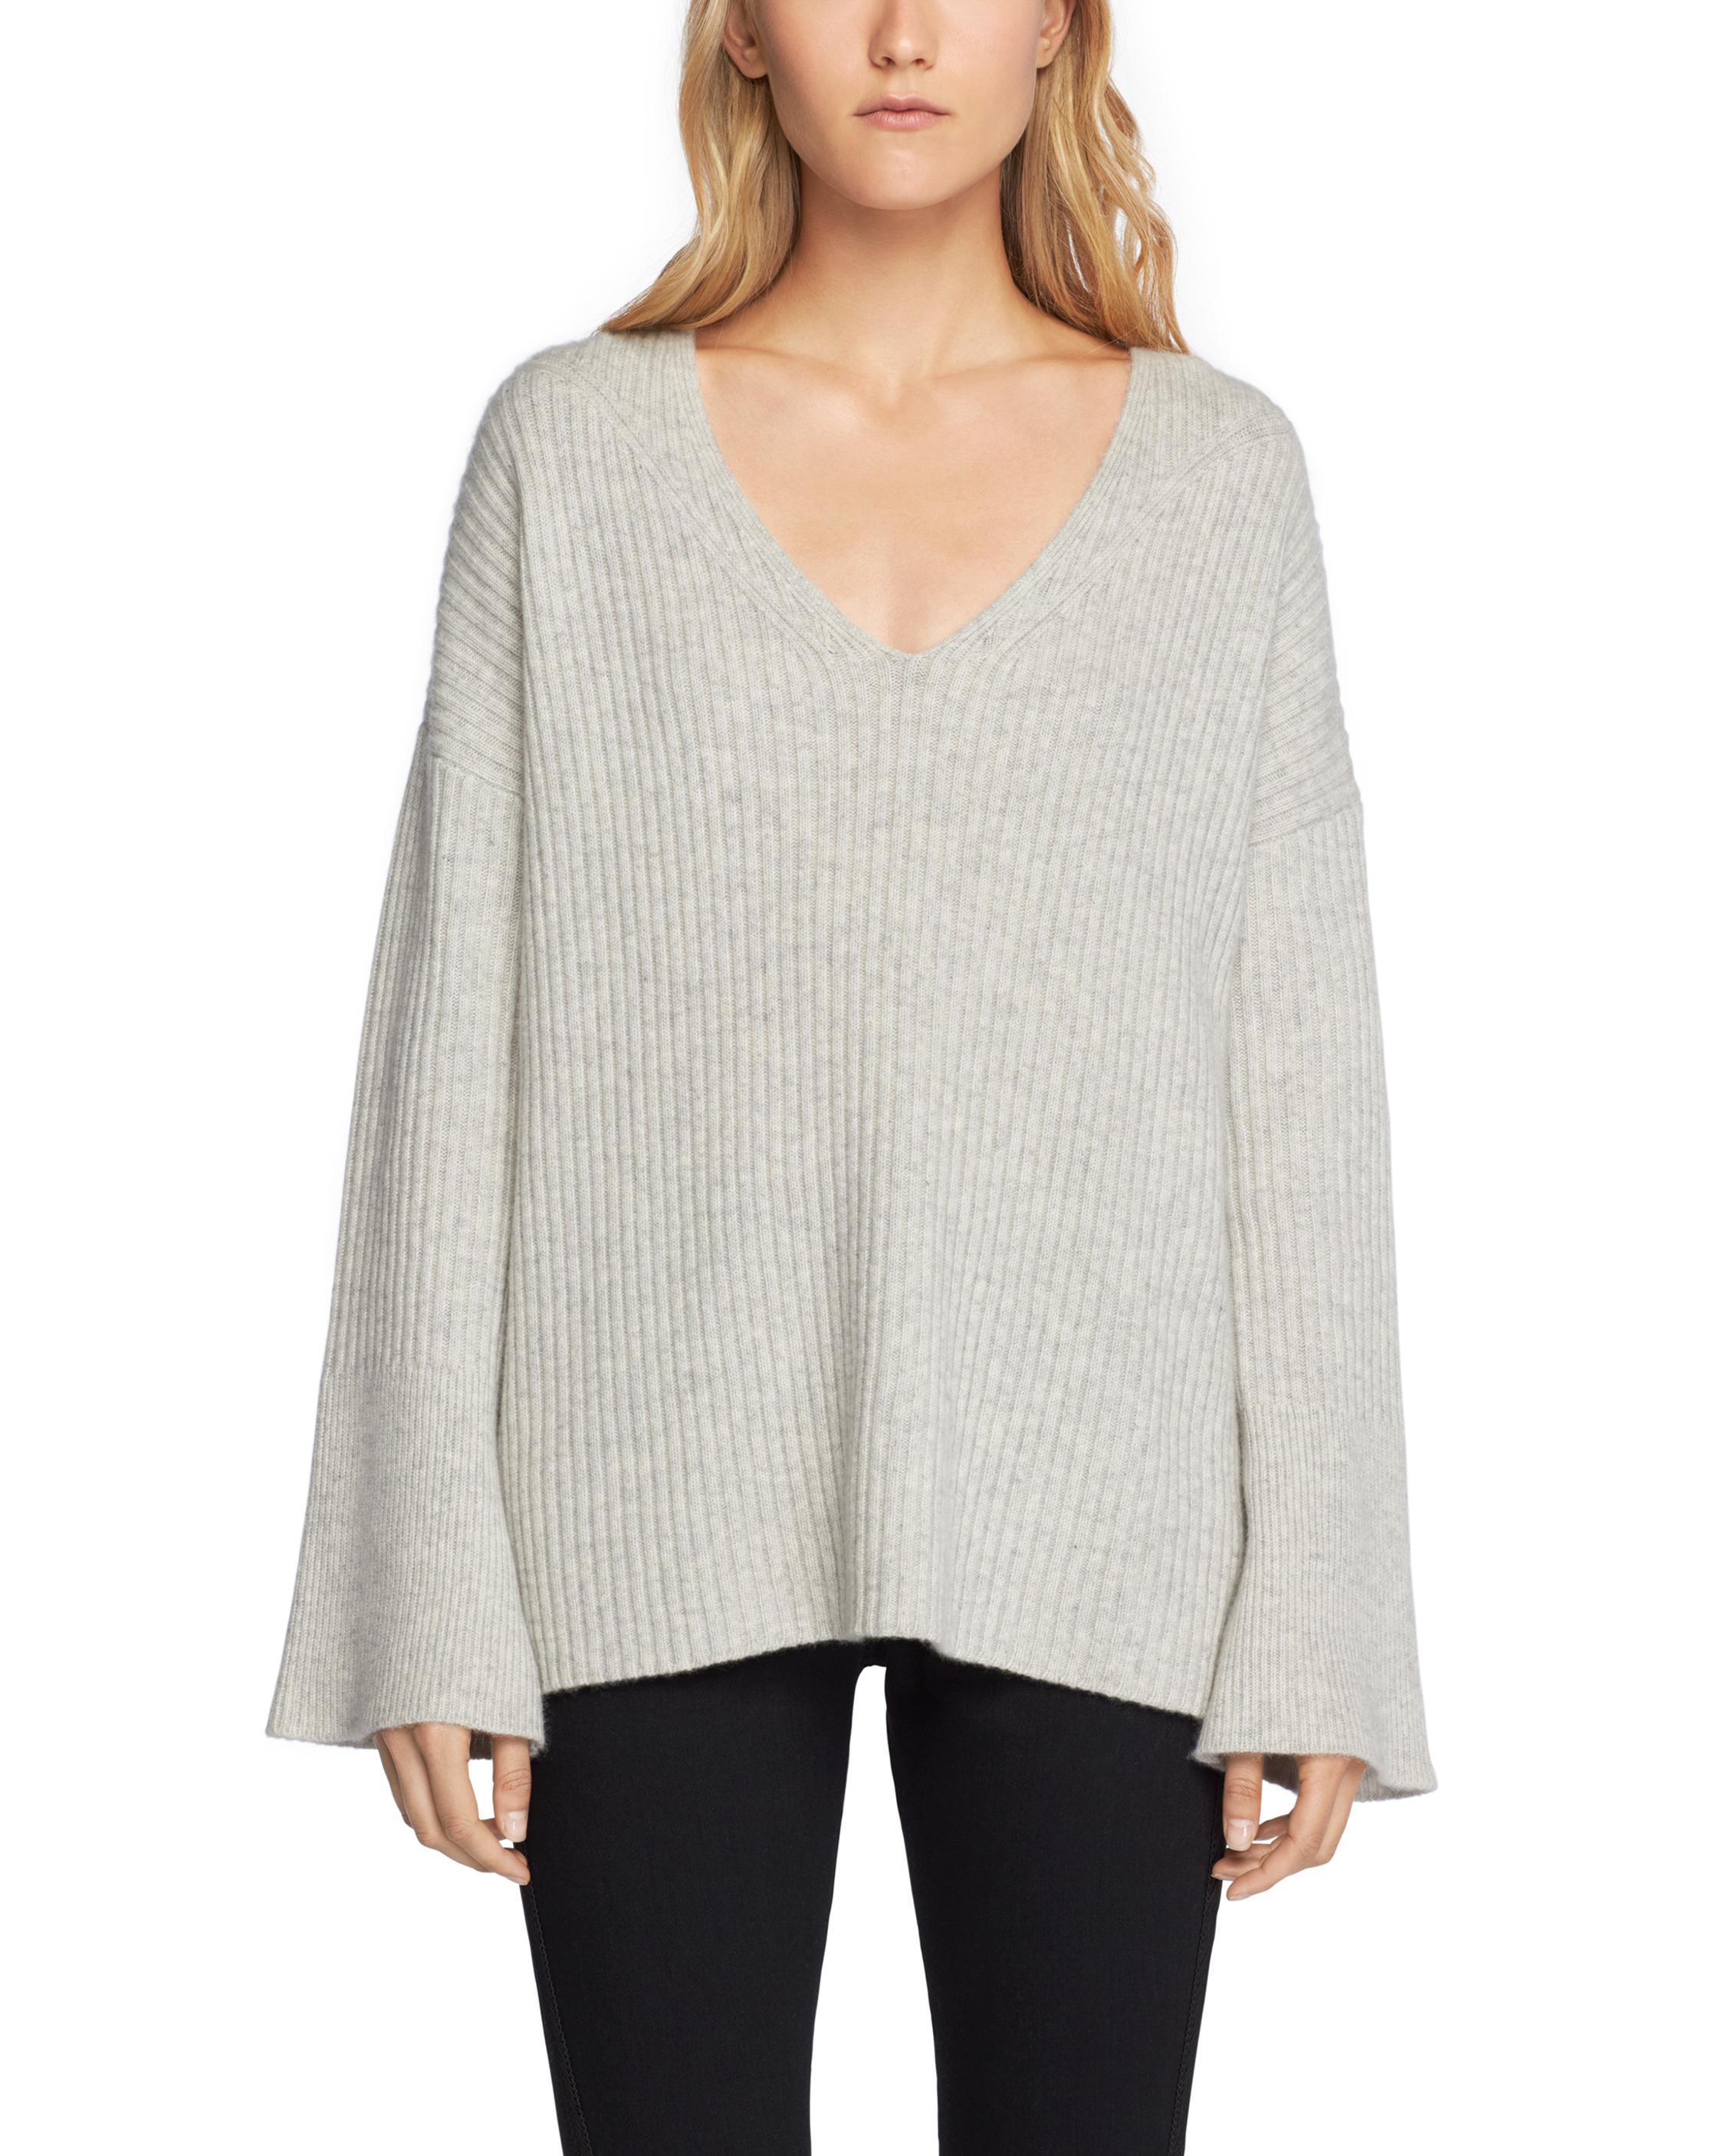 Rag & Bone cashmere fine knit sweater Brand New Unisex Online Clearance Cheap Price Online Cheap Price Cheap Sale Pre Order Discount Clearance Store RPtQoGnkGN